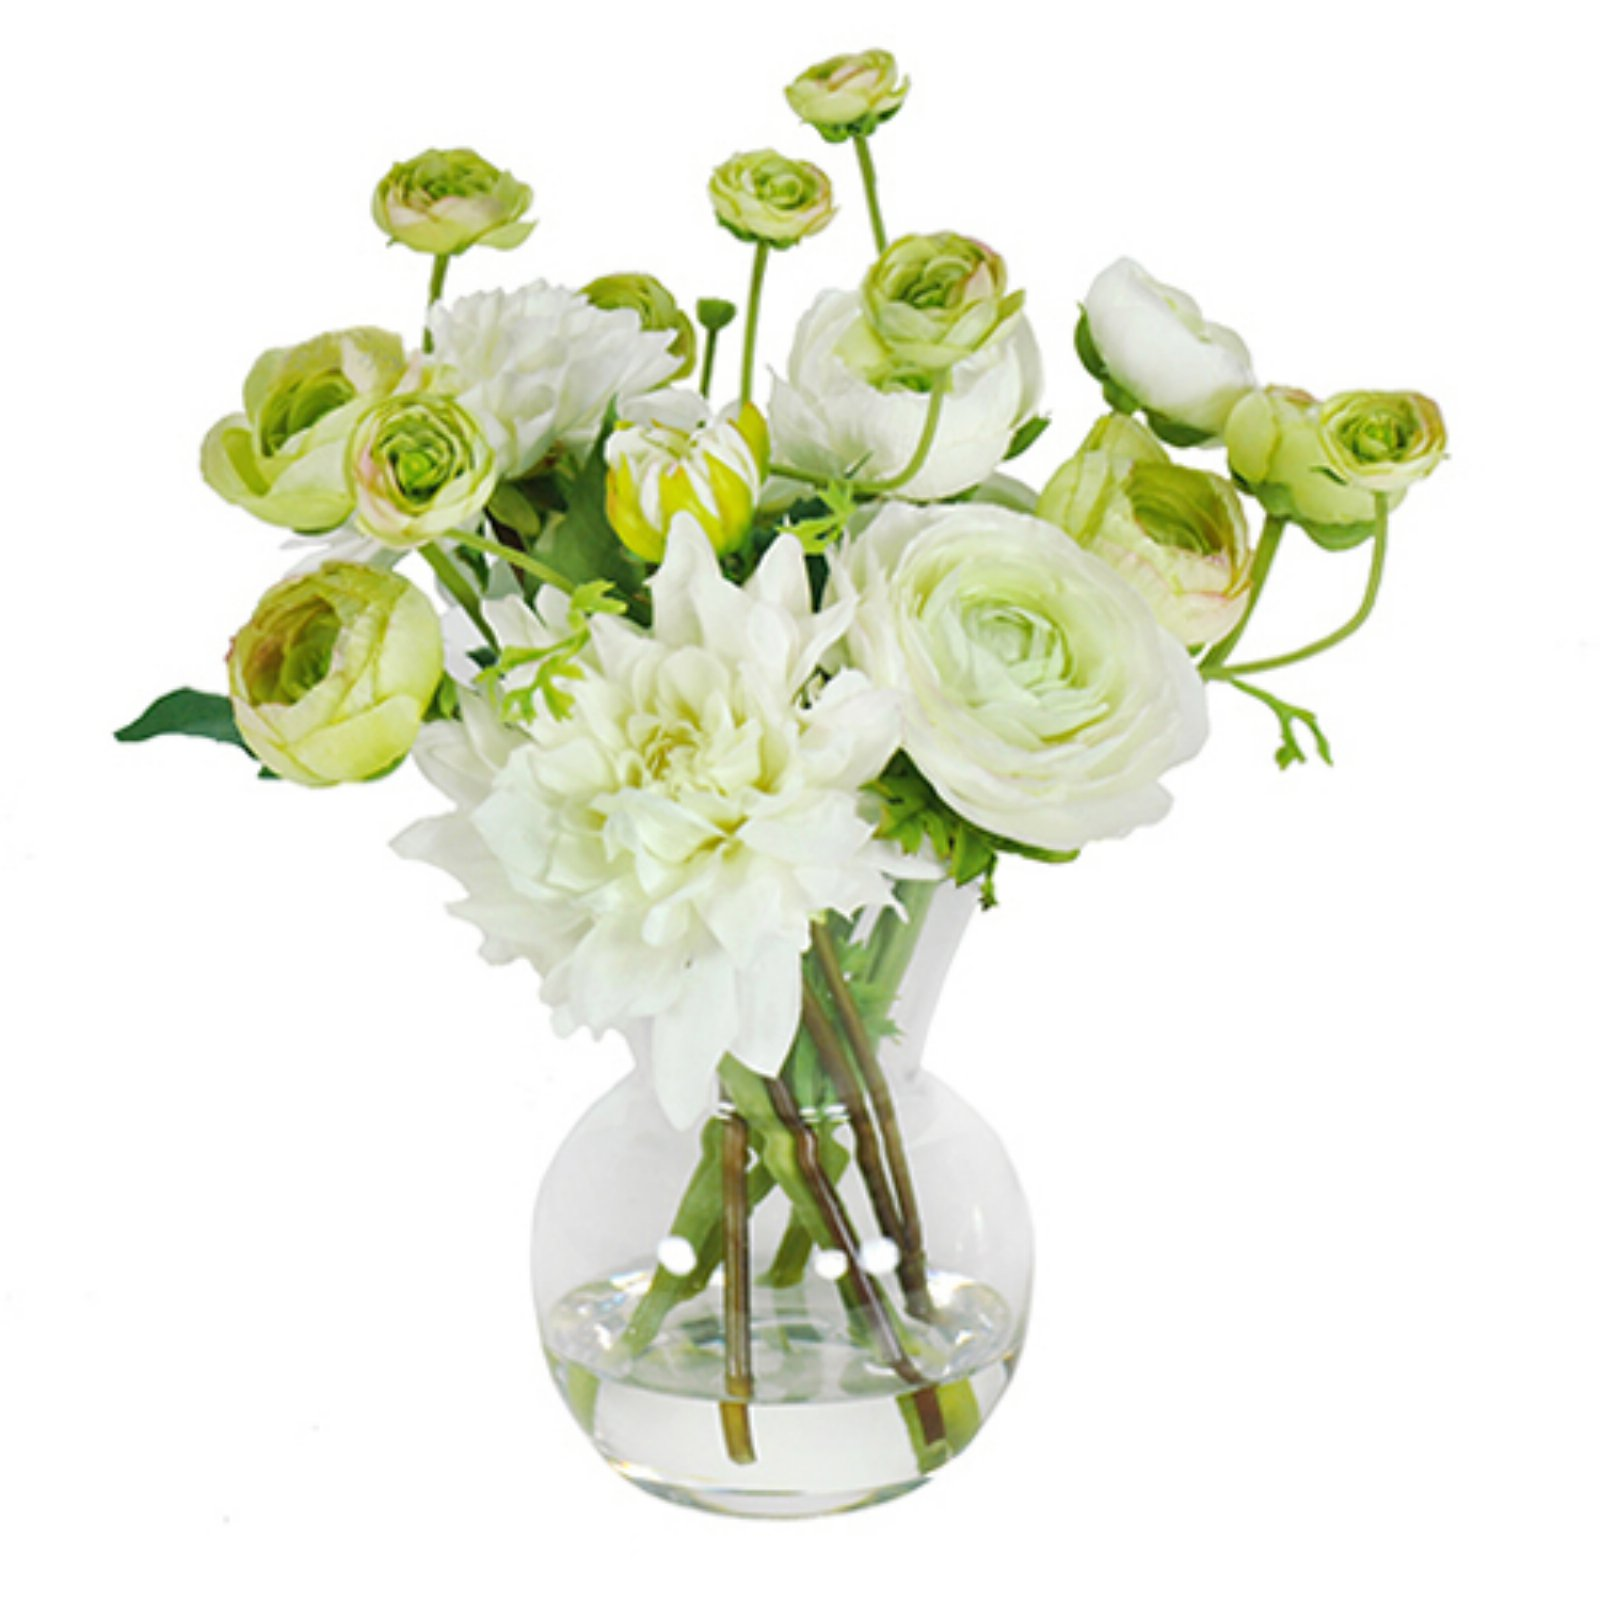 Jane Seymour Botanicals 11 in. Dahlias and Ranunculus in Glass Vase Silk Flower Arrangement